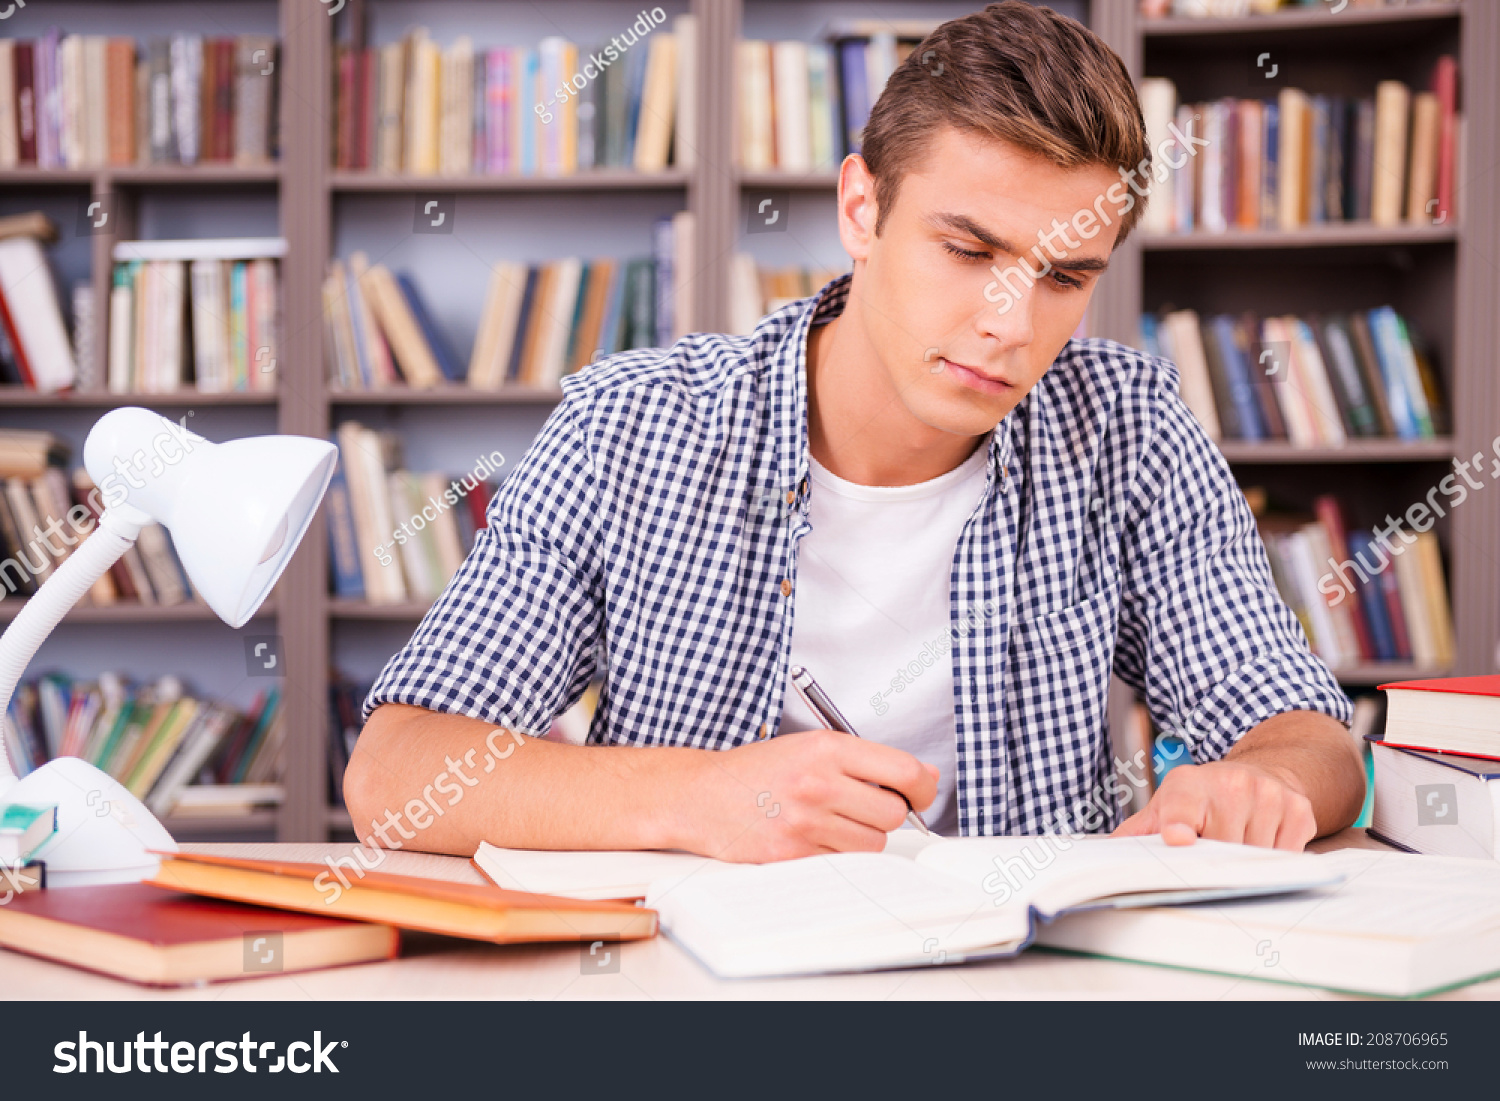 studying hard good grades confident young stock photo  studying hard for good grades confident young man making research while sitting in library